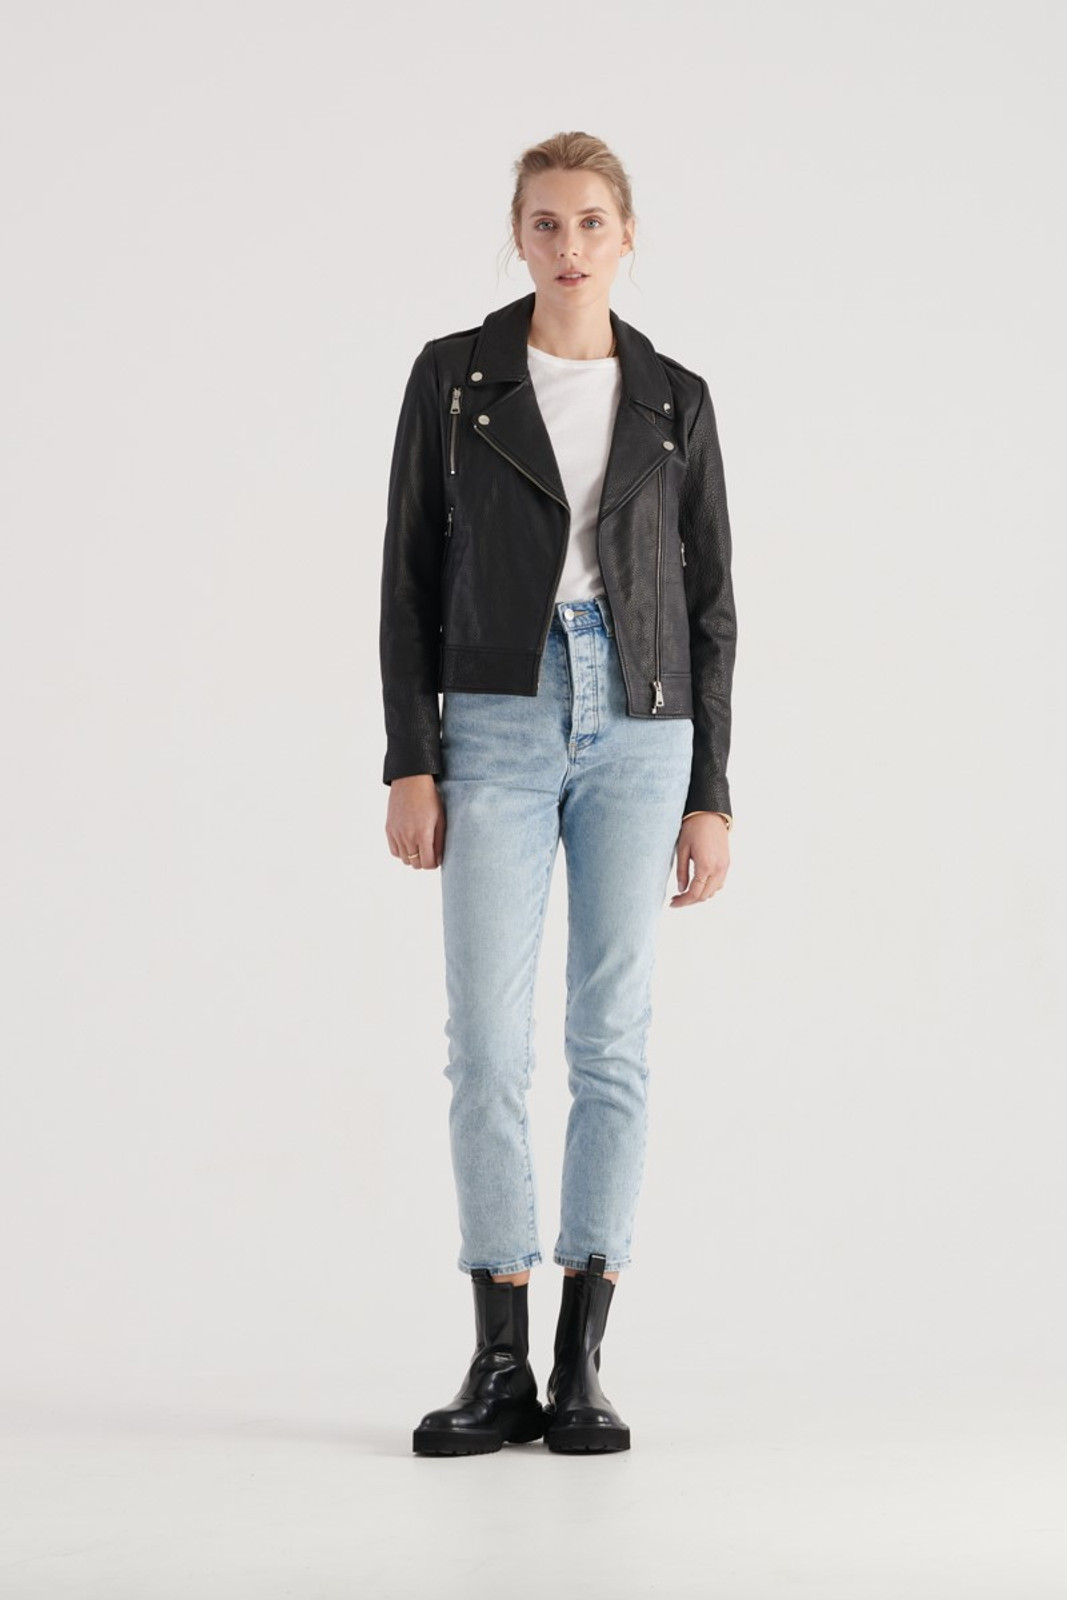 Elka Collective WOMENS Black Carrie Leather Jacket 1